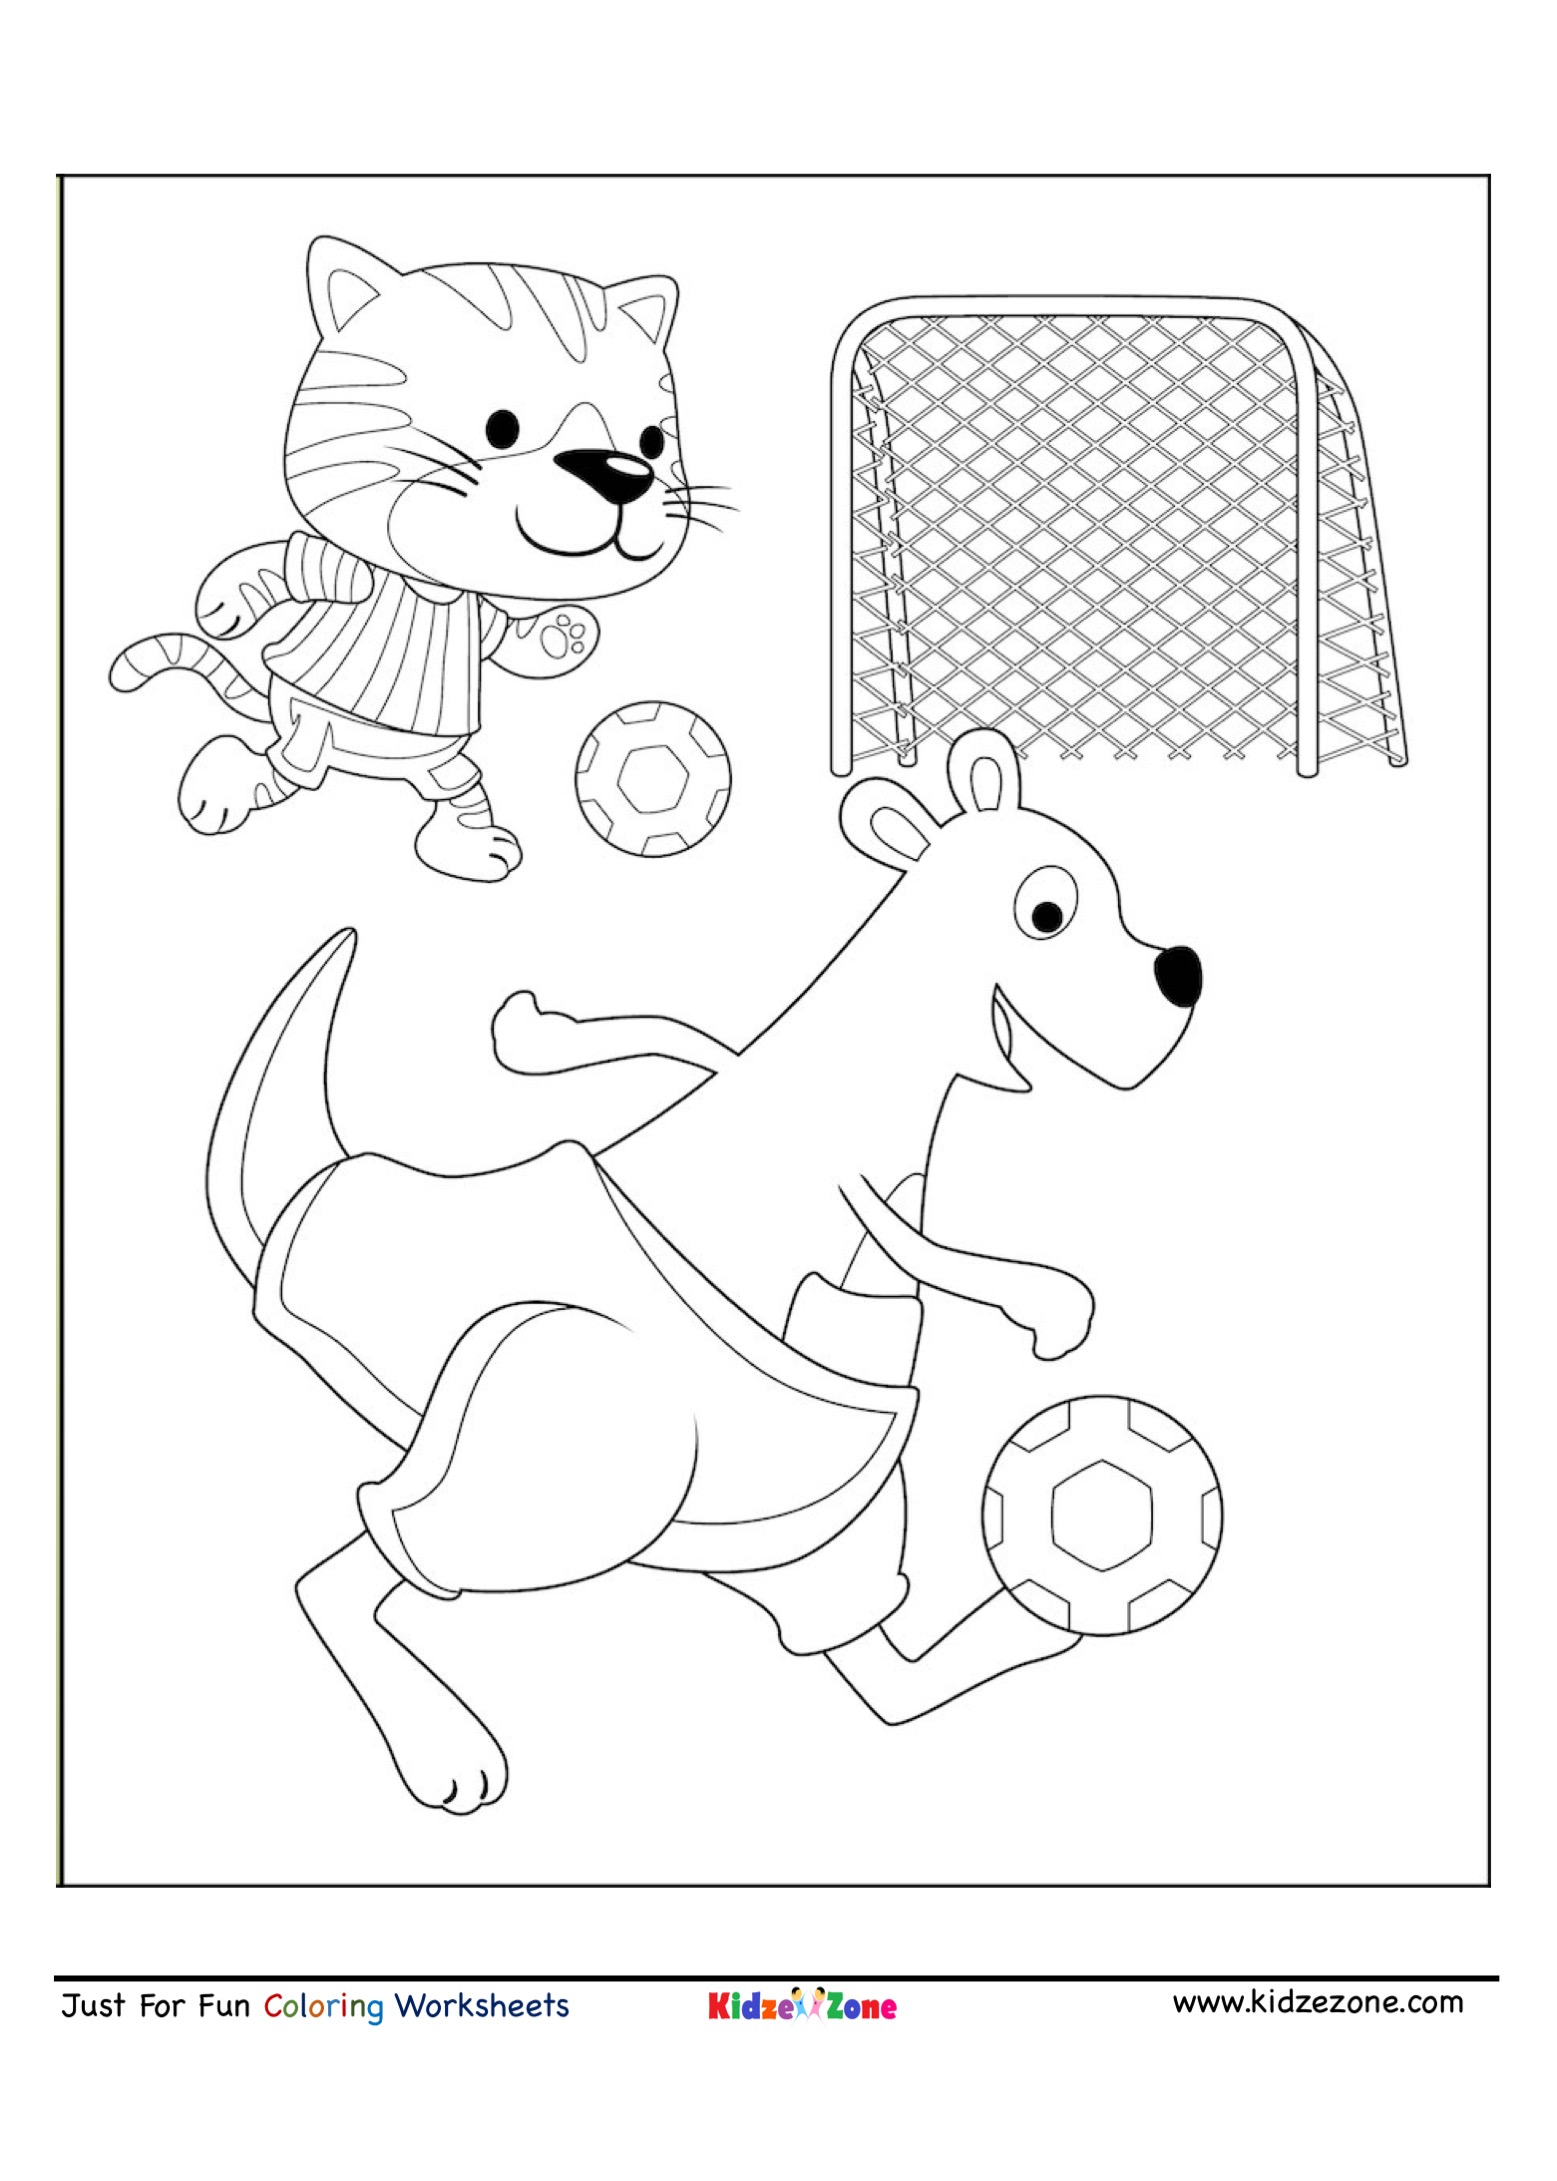 Kangaroo And Tiger Soccer Coloring Page